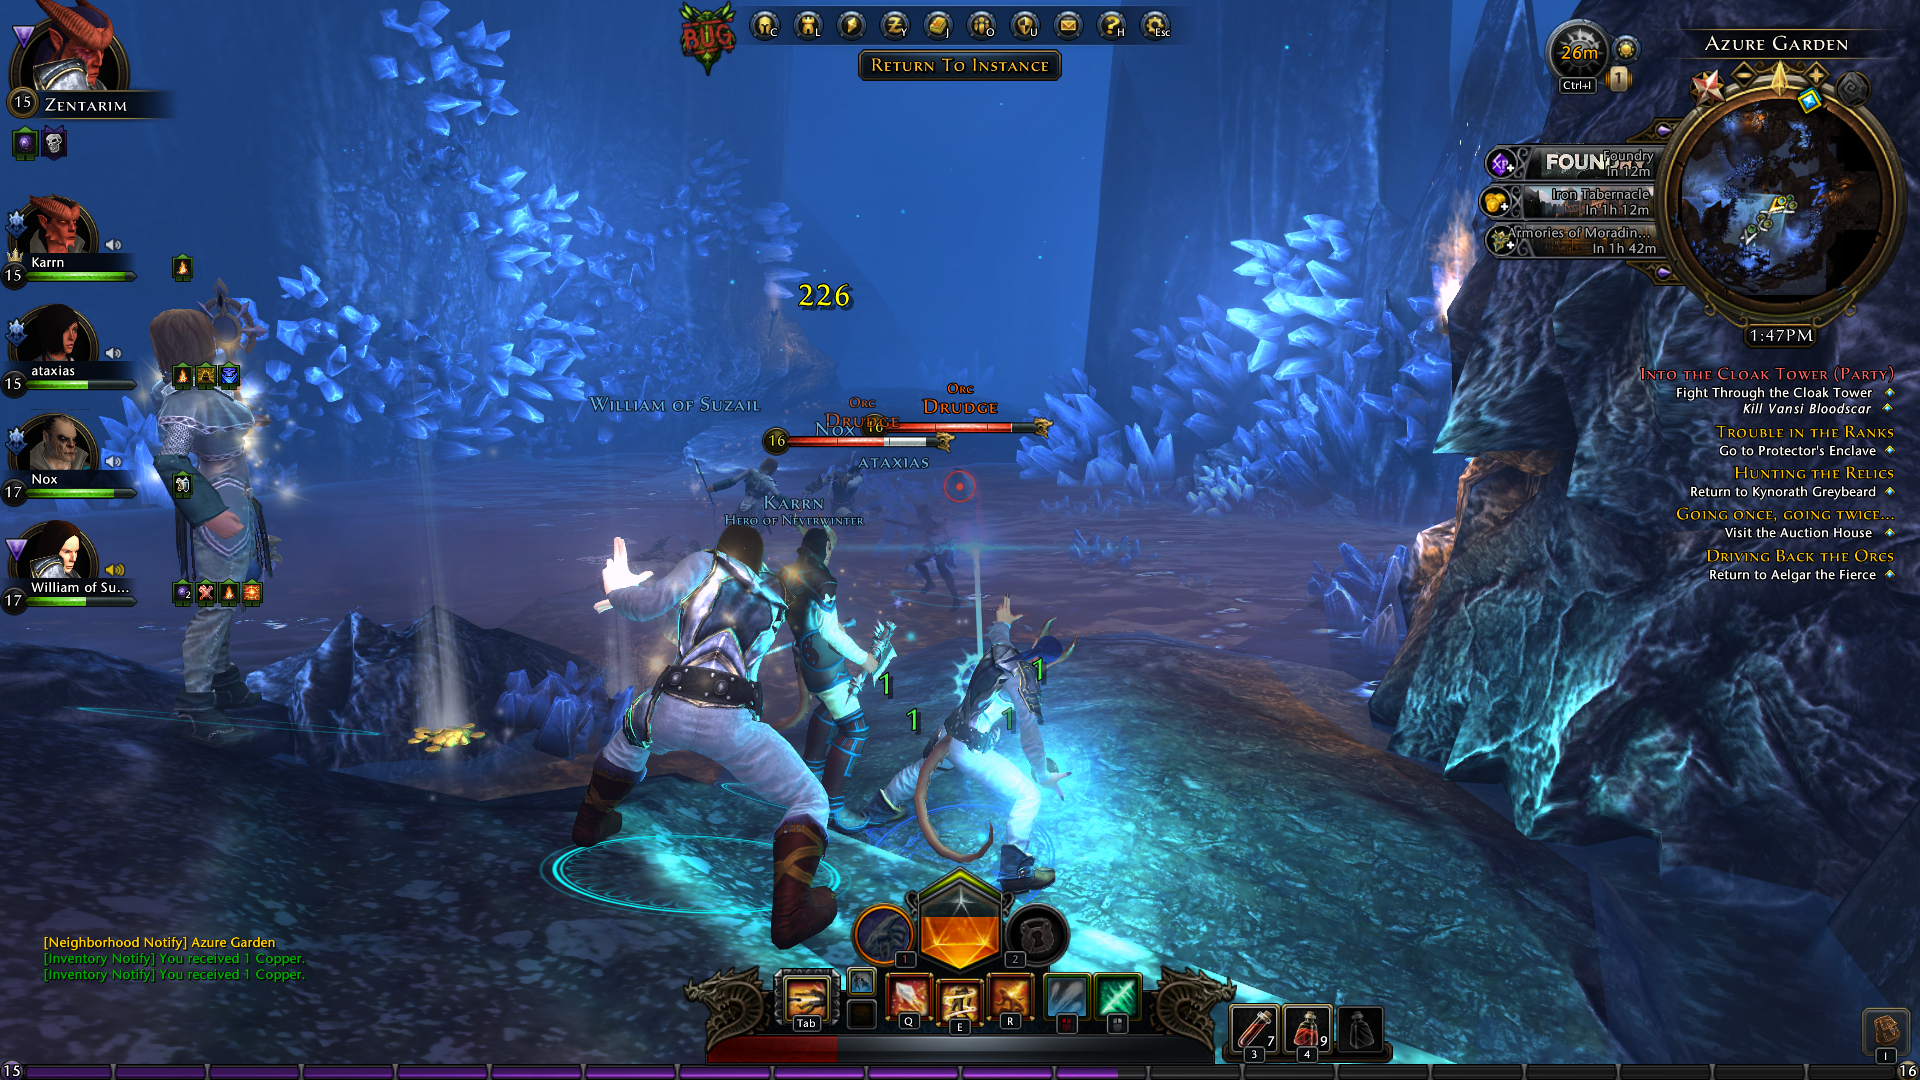 neverwinter12